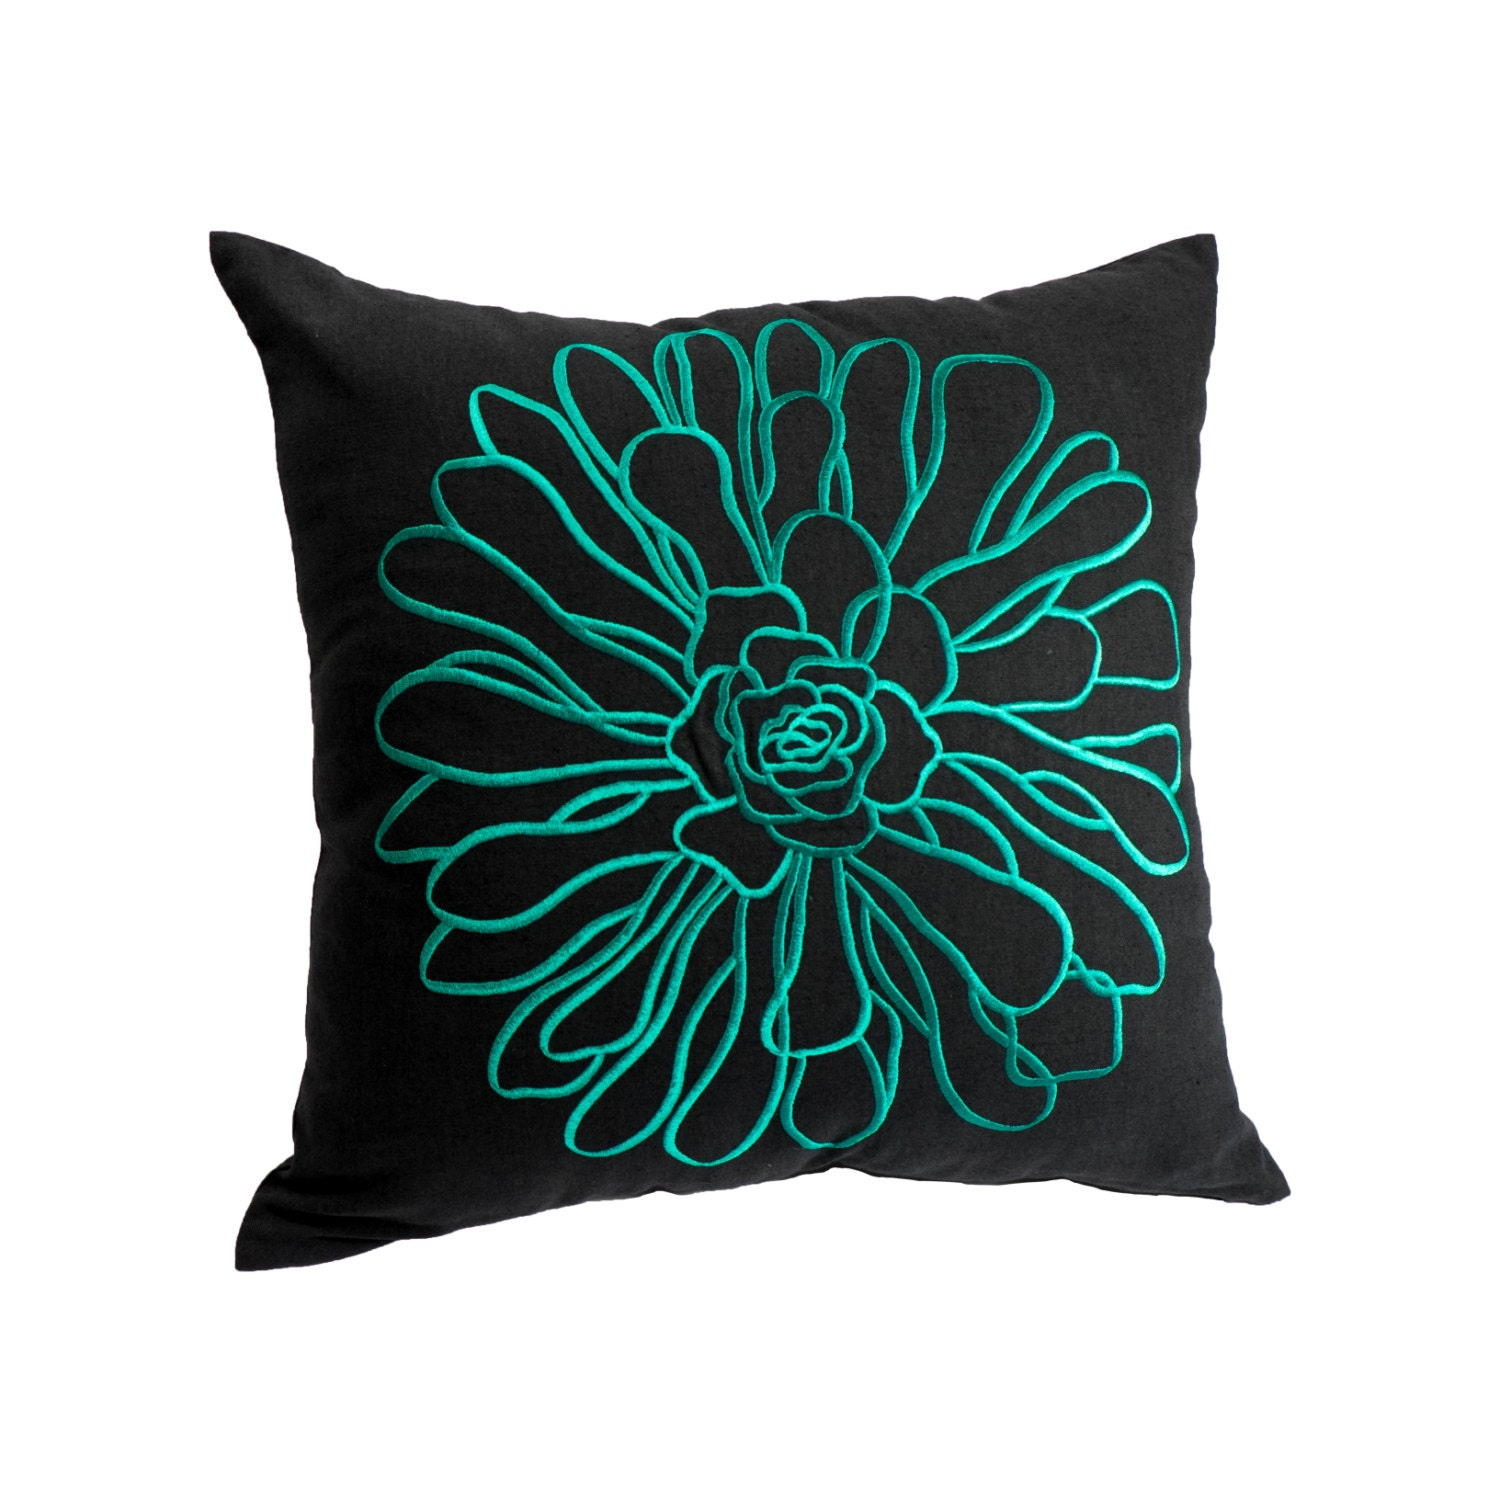 Teal Decorative Pillow Cover Throw Pillow Cover Teal Floral